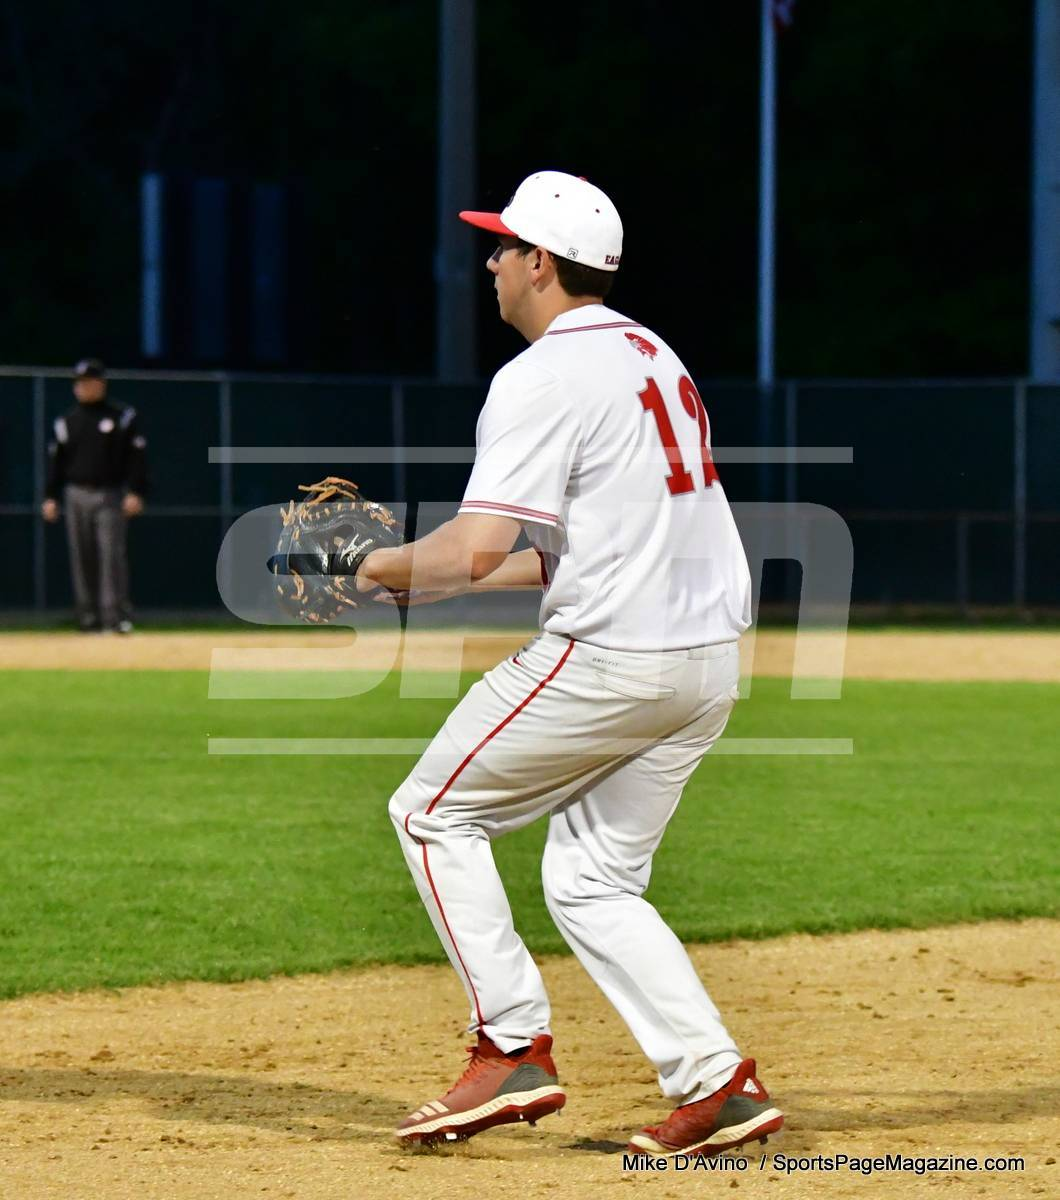 05-22 Gallery CIAC BASE; Wolcott vs. ST. Paul - NVL T. SF's - Photo # 1118